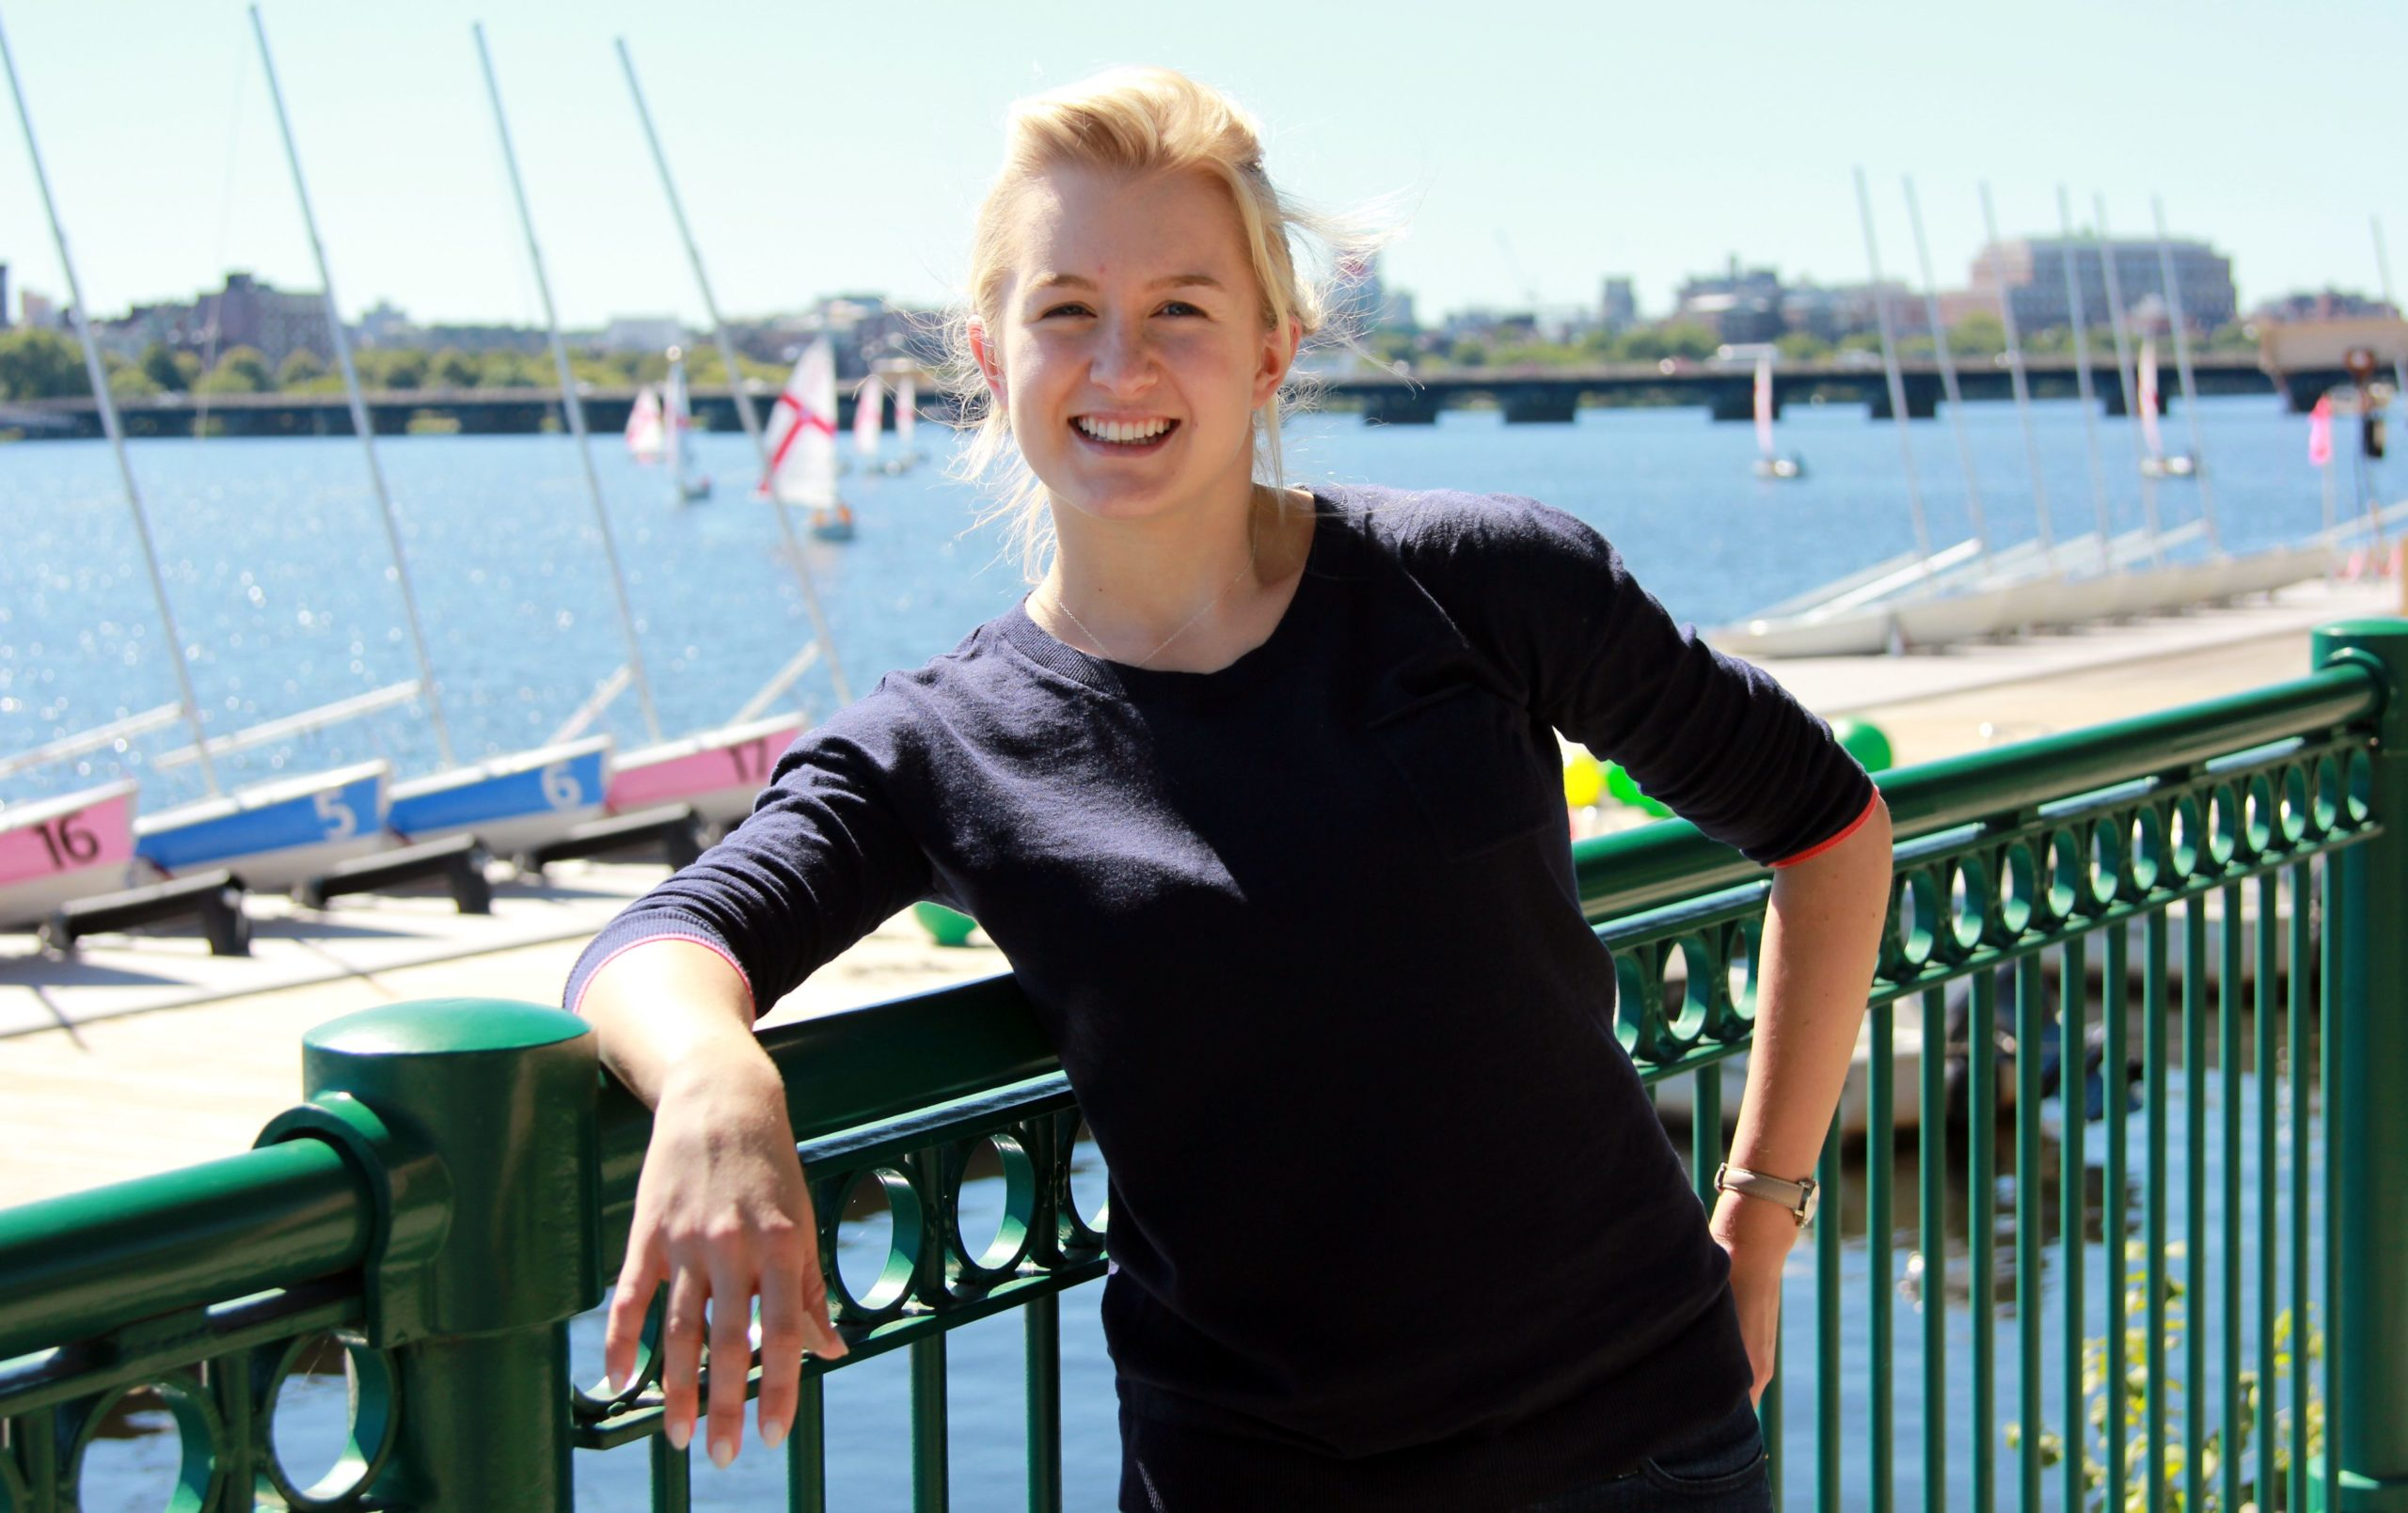 Grace Young, wearing a dark, long-sleeved Tshirt, leans against a railing at a marina and smiles cheerfully at the camera. Behind her is a river with several small sailboats.